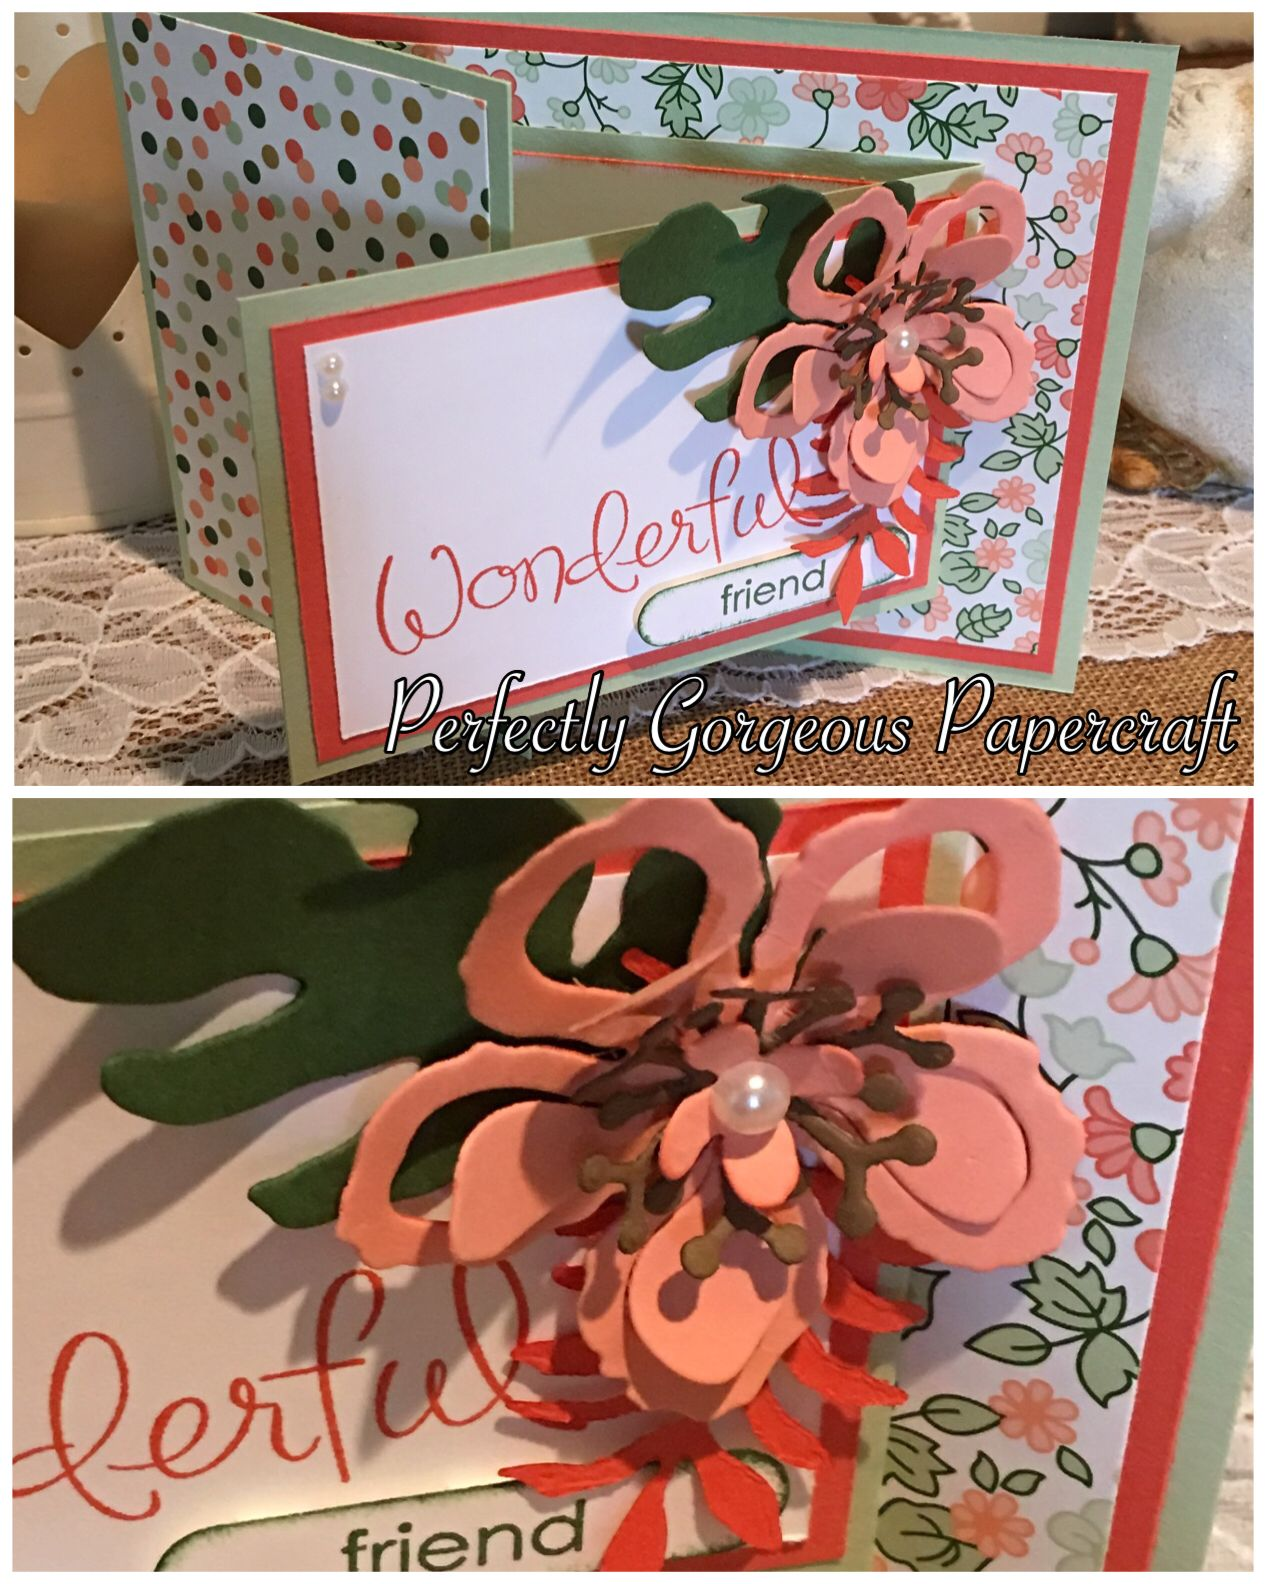 Created by Wendy at Perfectly Gorgeous Papercraft http://youtu.be/jK5fvNdCWHA